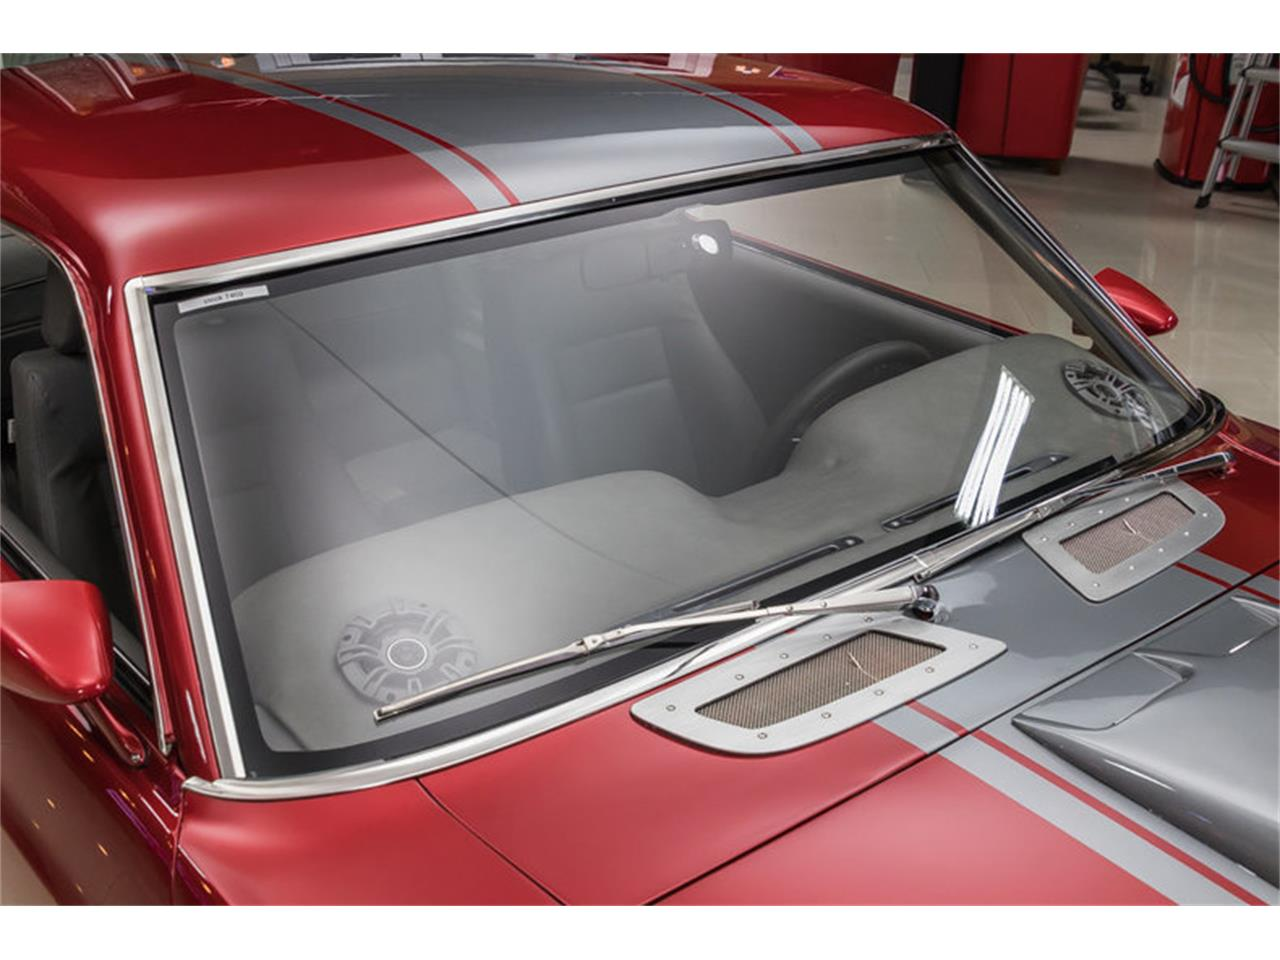 Large Picture of '69 Mustang Fastback Restomod located in Plymouth Michigan - $194,900.00 - L6C8